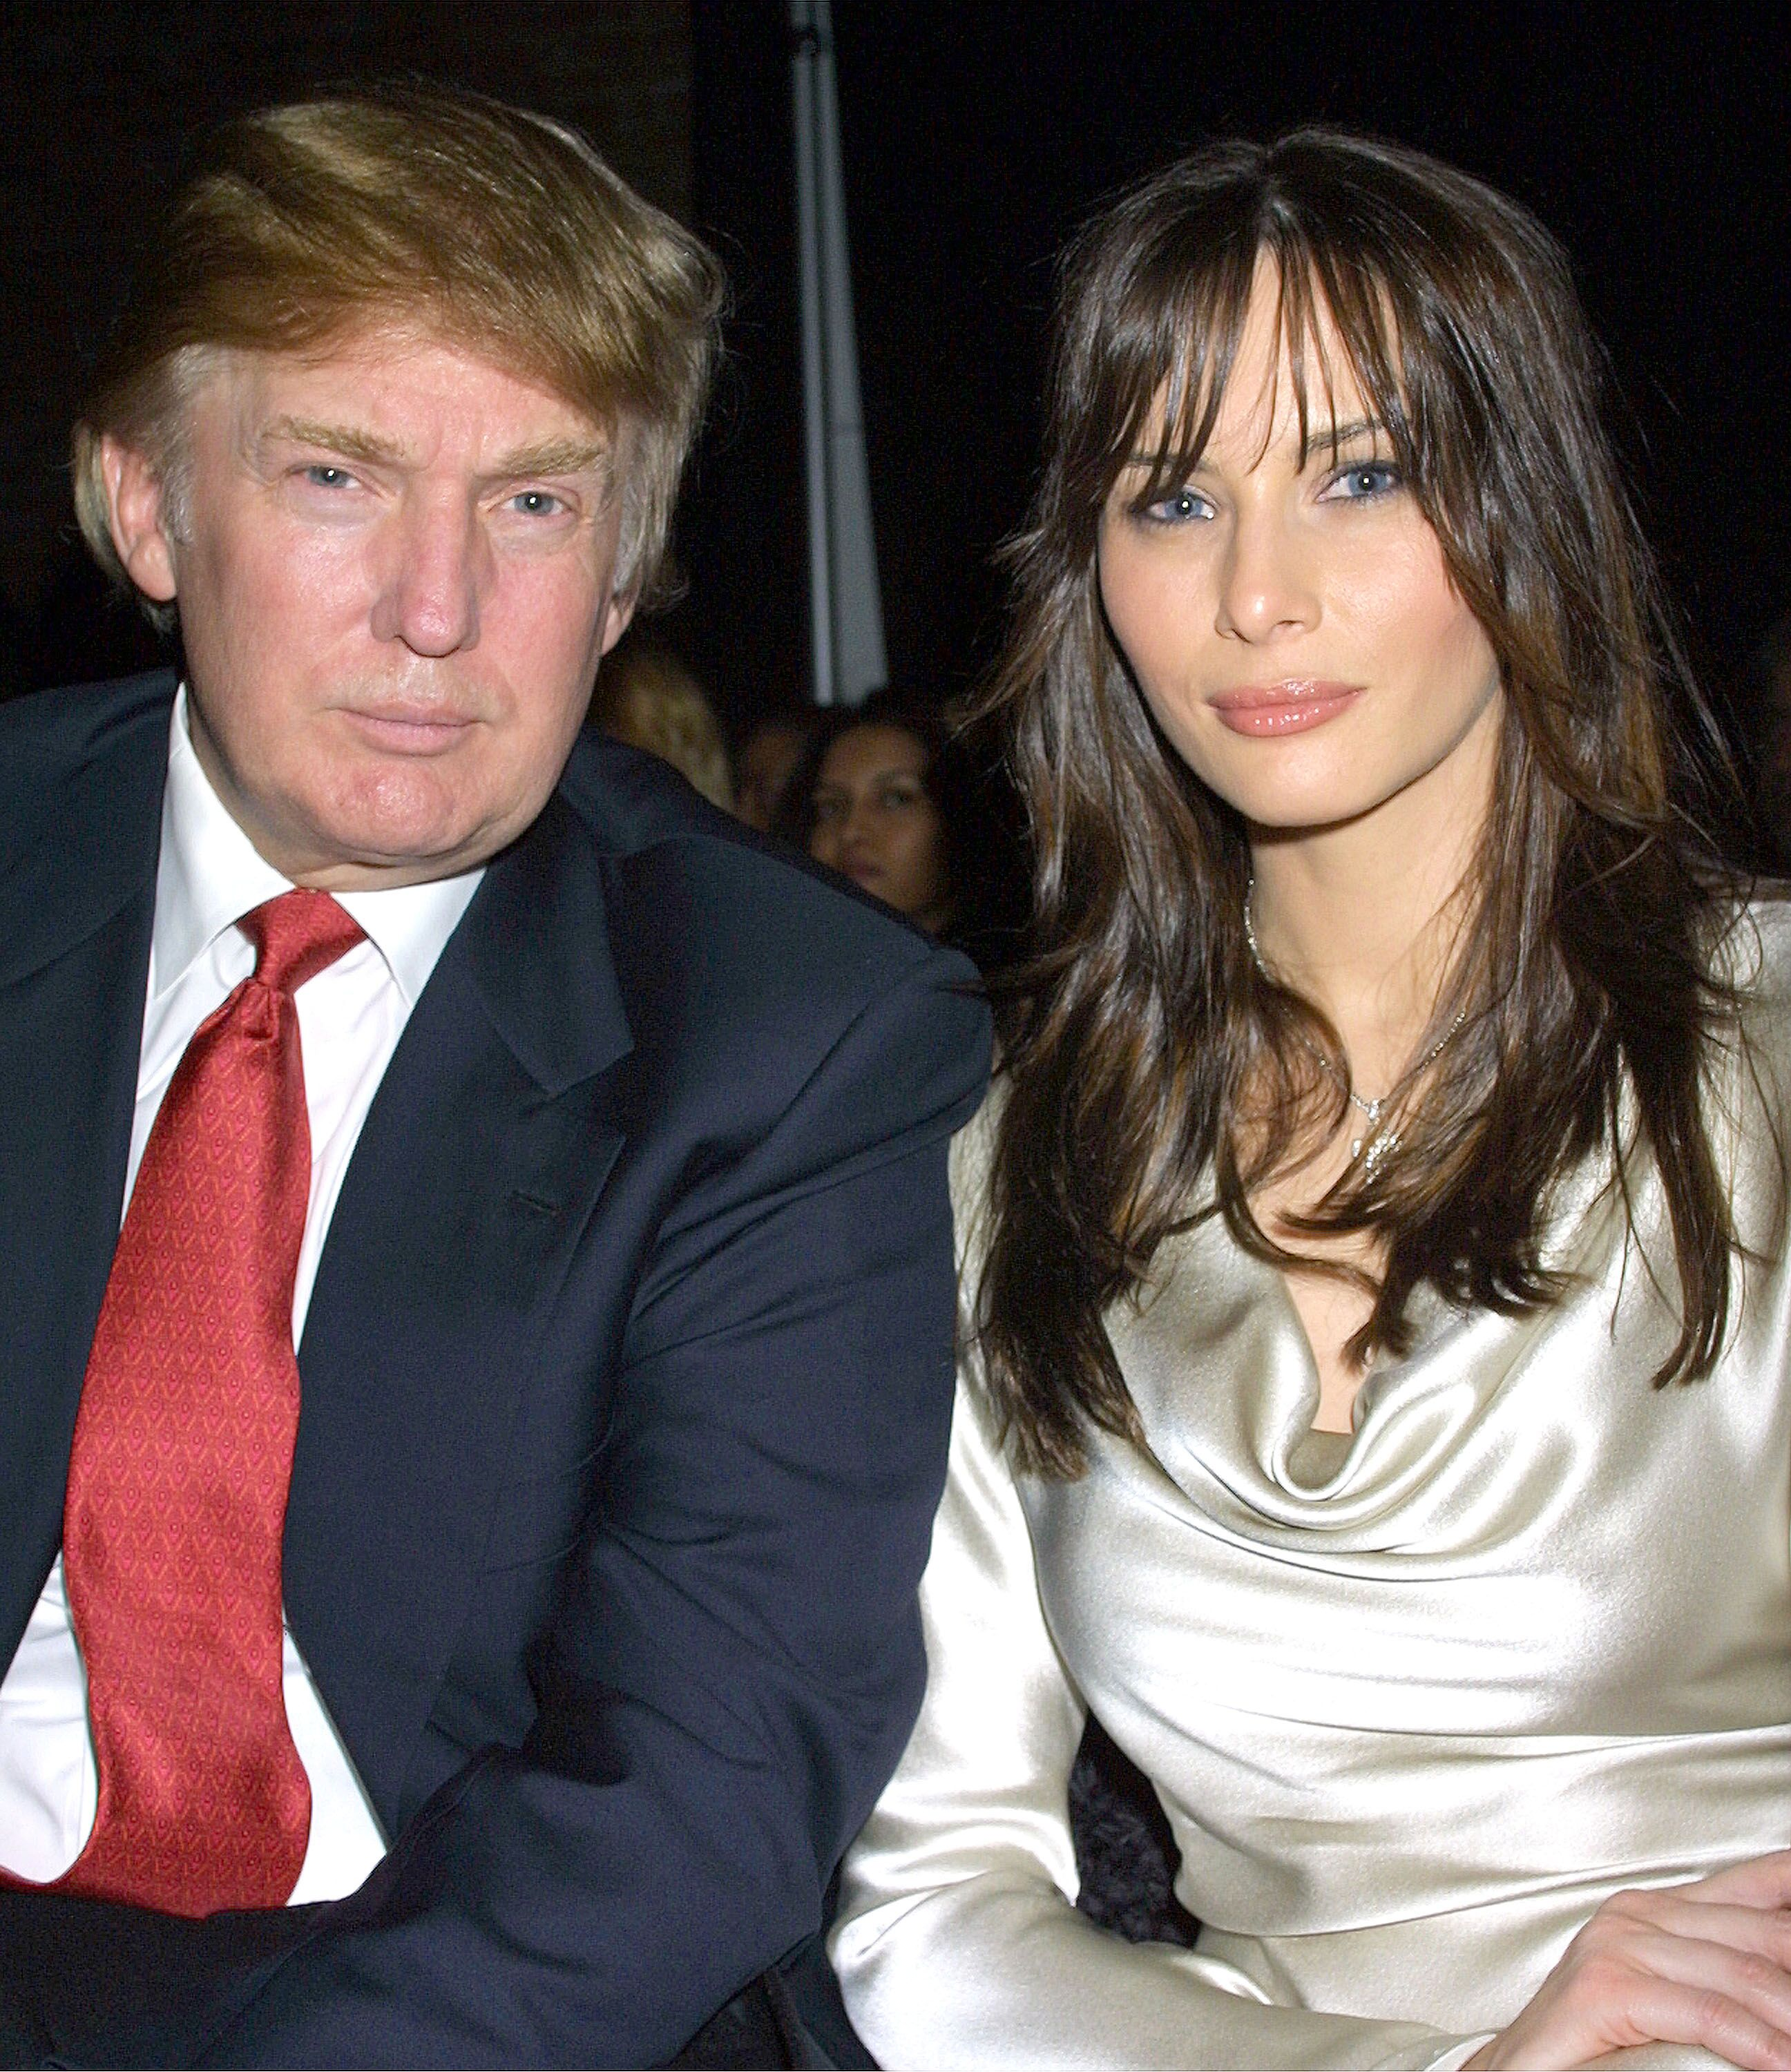 Melania Trump and Donald Trump at a red carpet event | Getty images / Global Images Ukraine